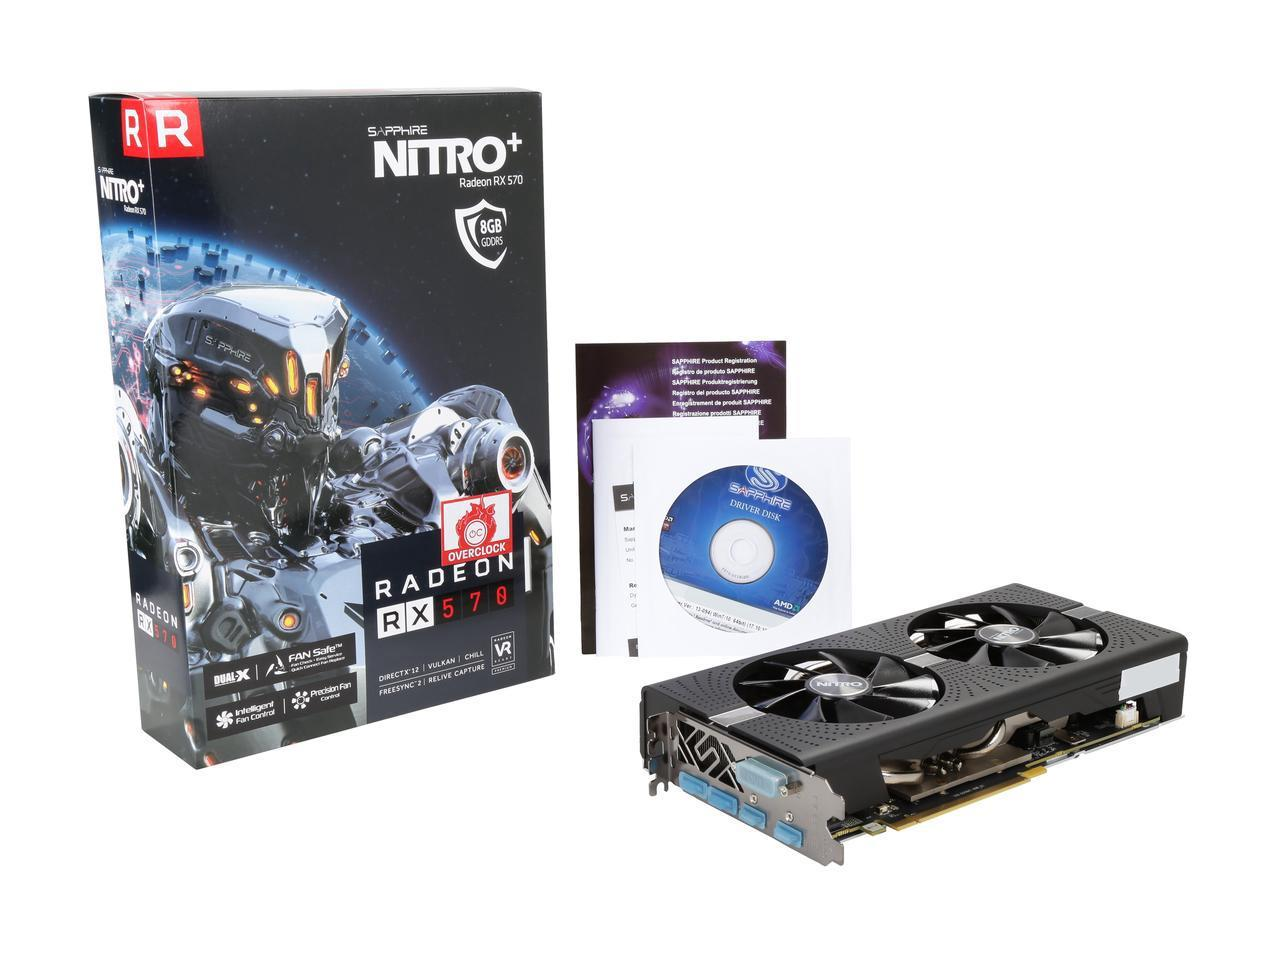 Sapphire RX 570 Overclock OC Excellent Condition Computer Components